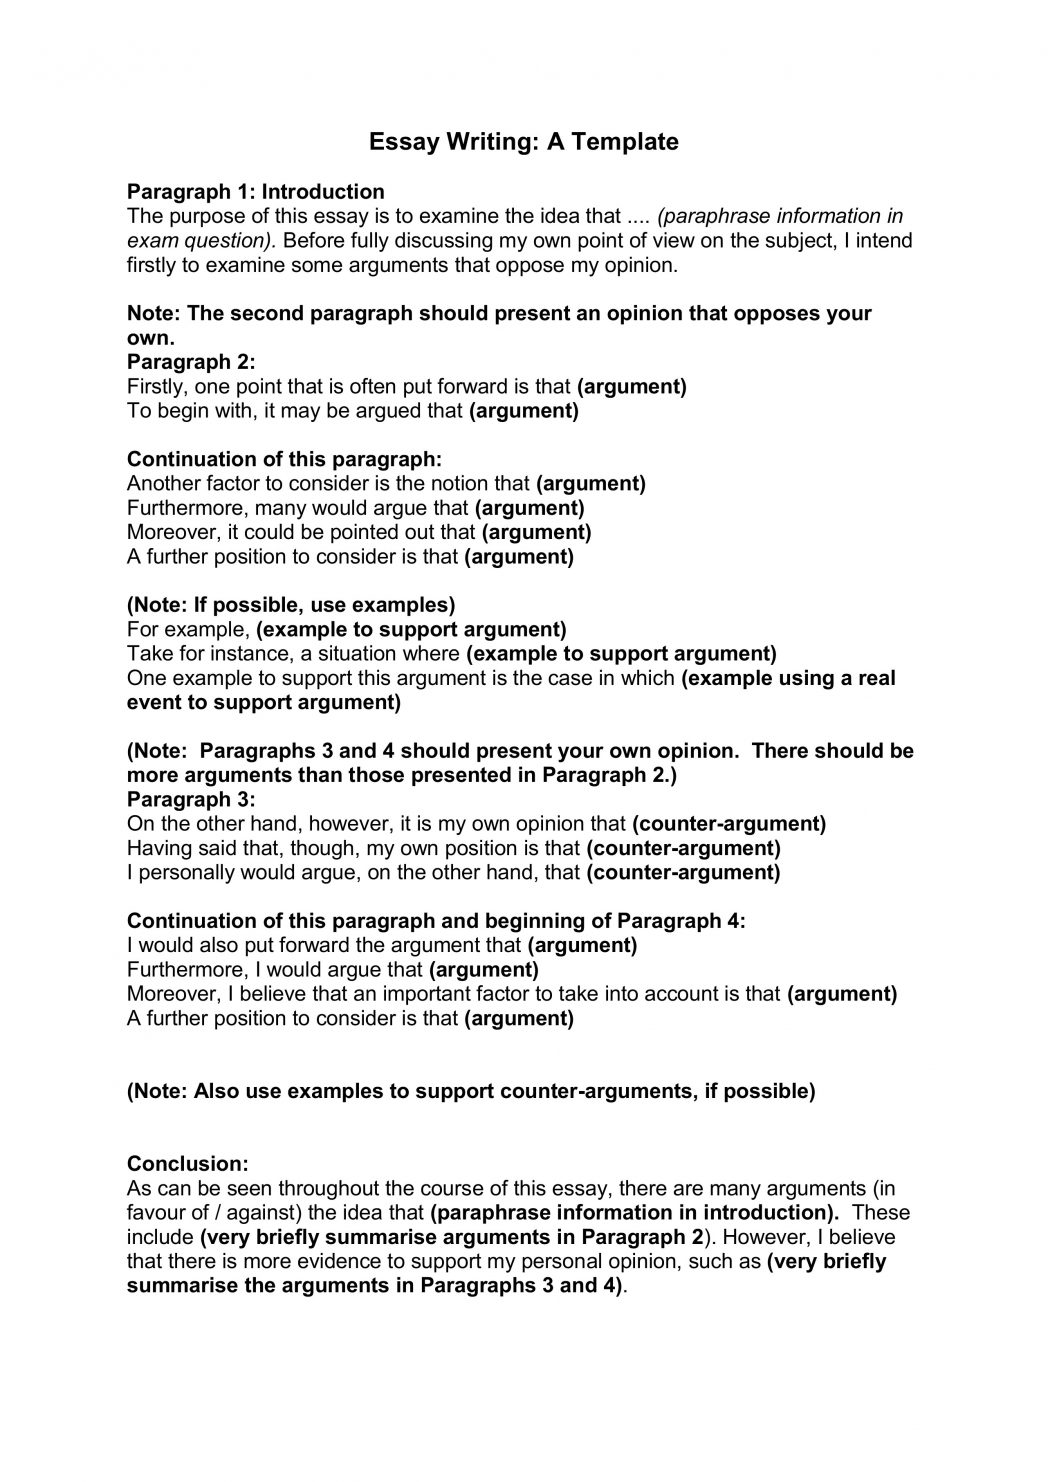 022 Essay Example Argumentative Thesis For Literary How To Write Writing Template P An Statements And Paragraphs Do I Statement You Sentence Formidable Examples Exercises Format Full